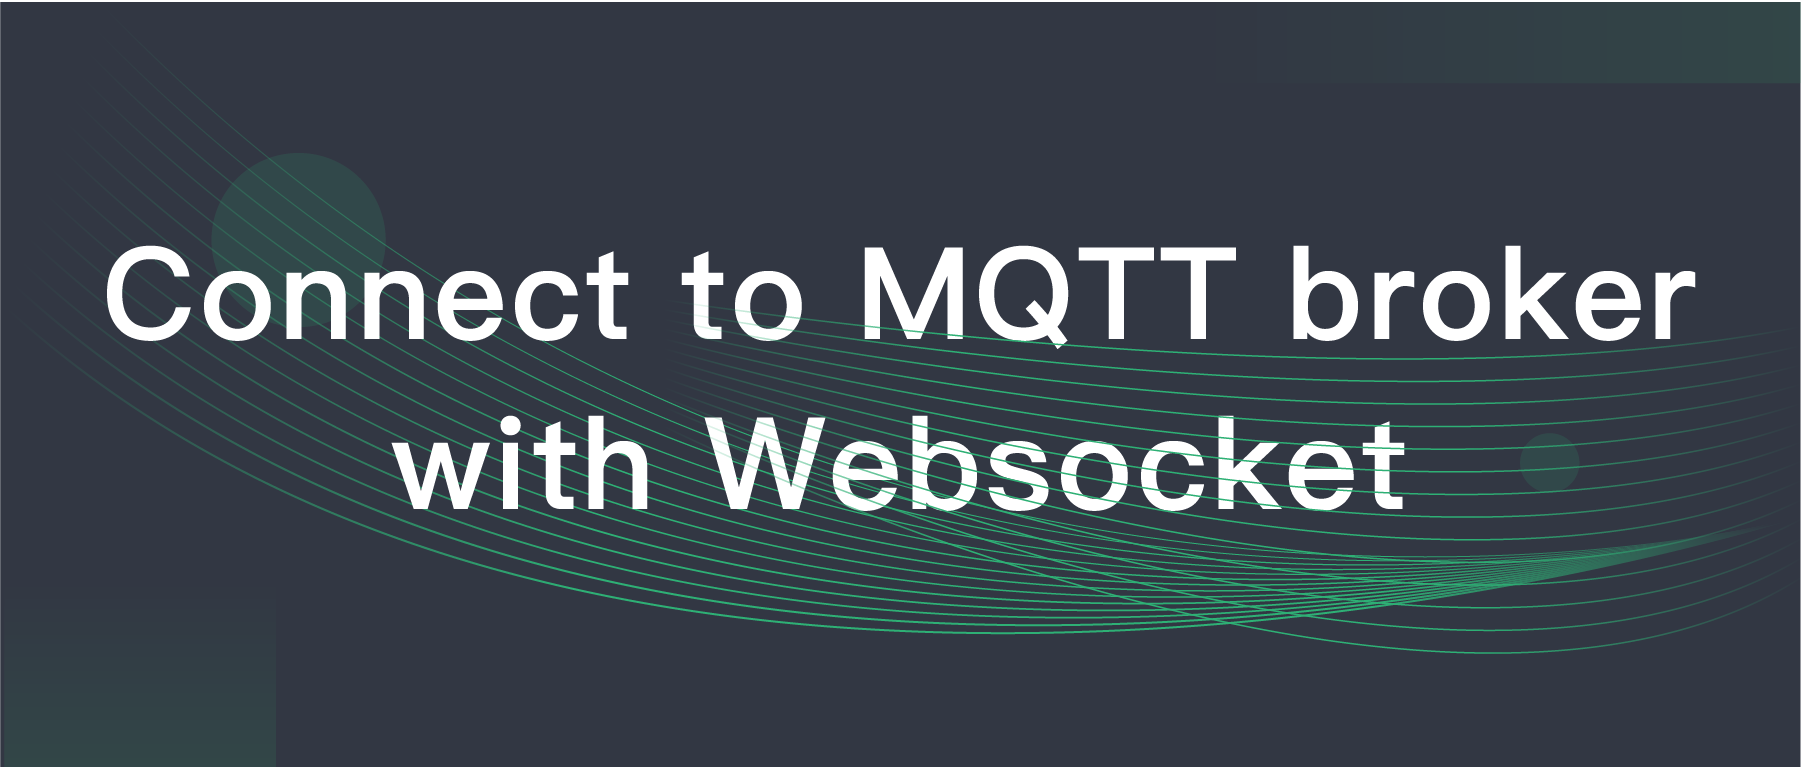 Connect to MQTT broker with Websocket